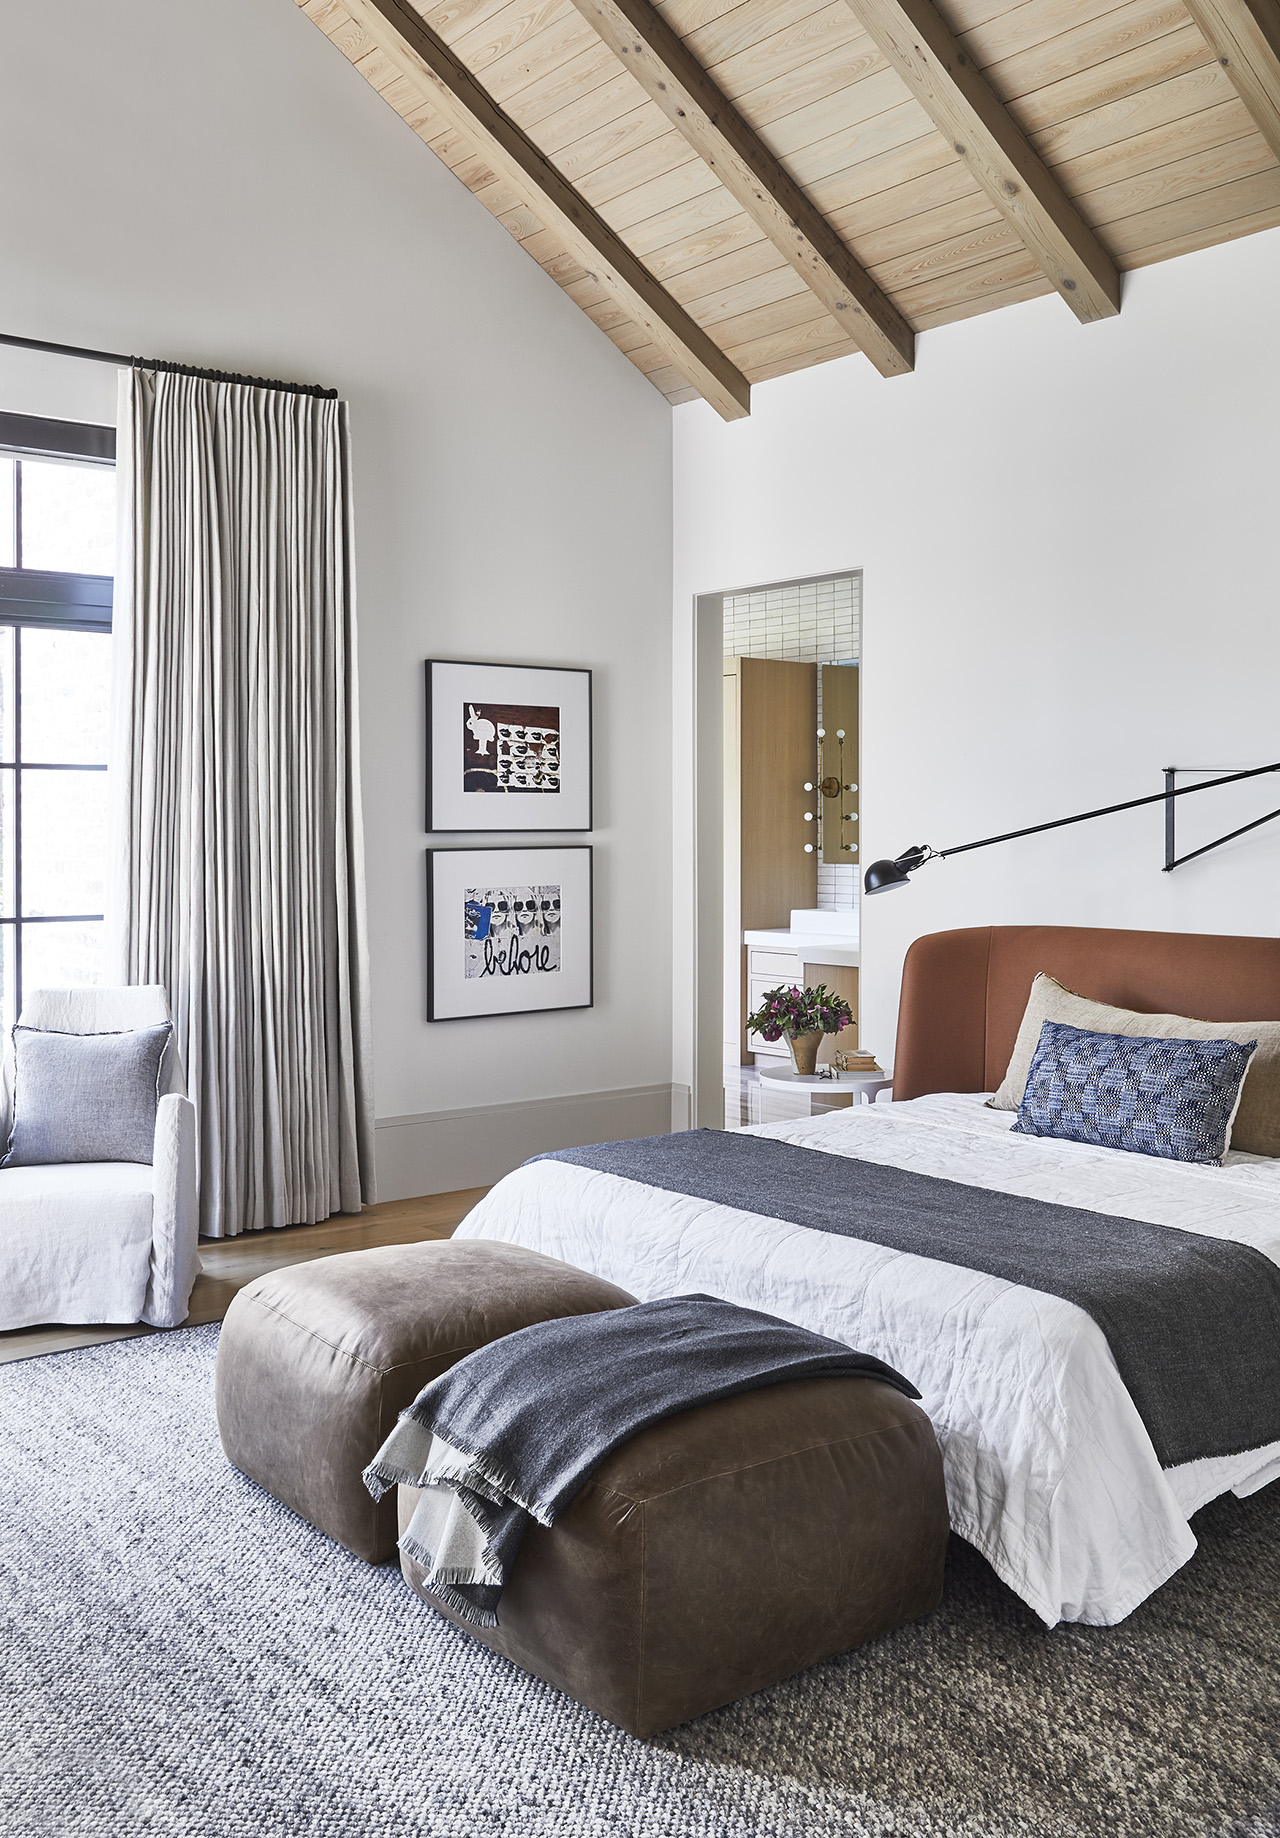 The master bedroom with ensuite pictured below.